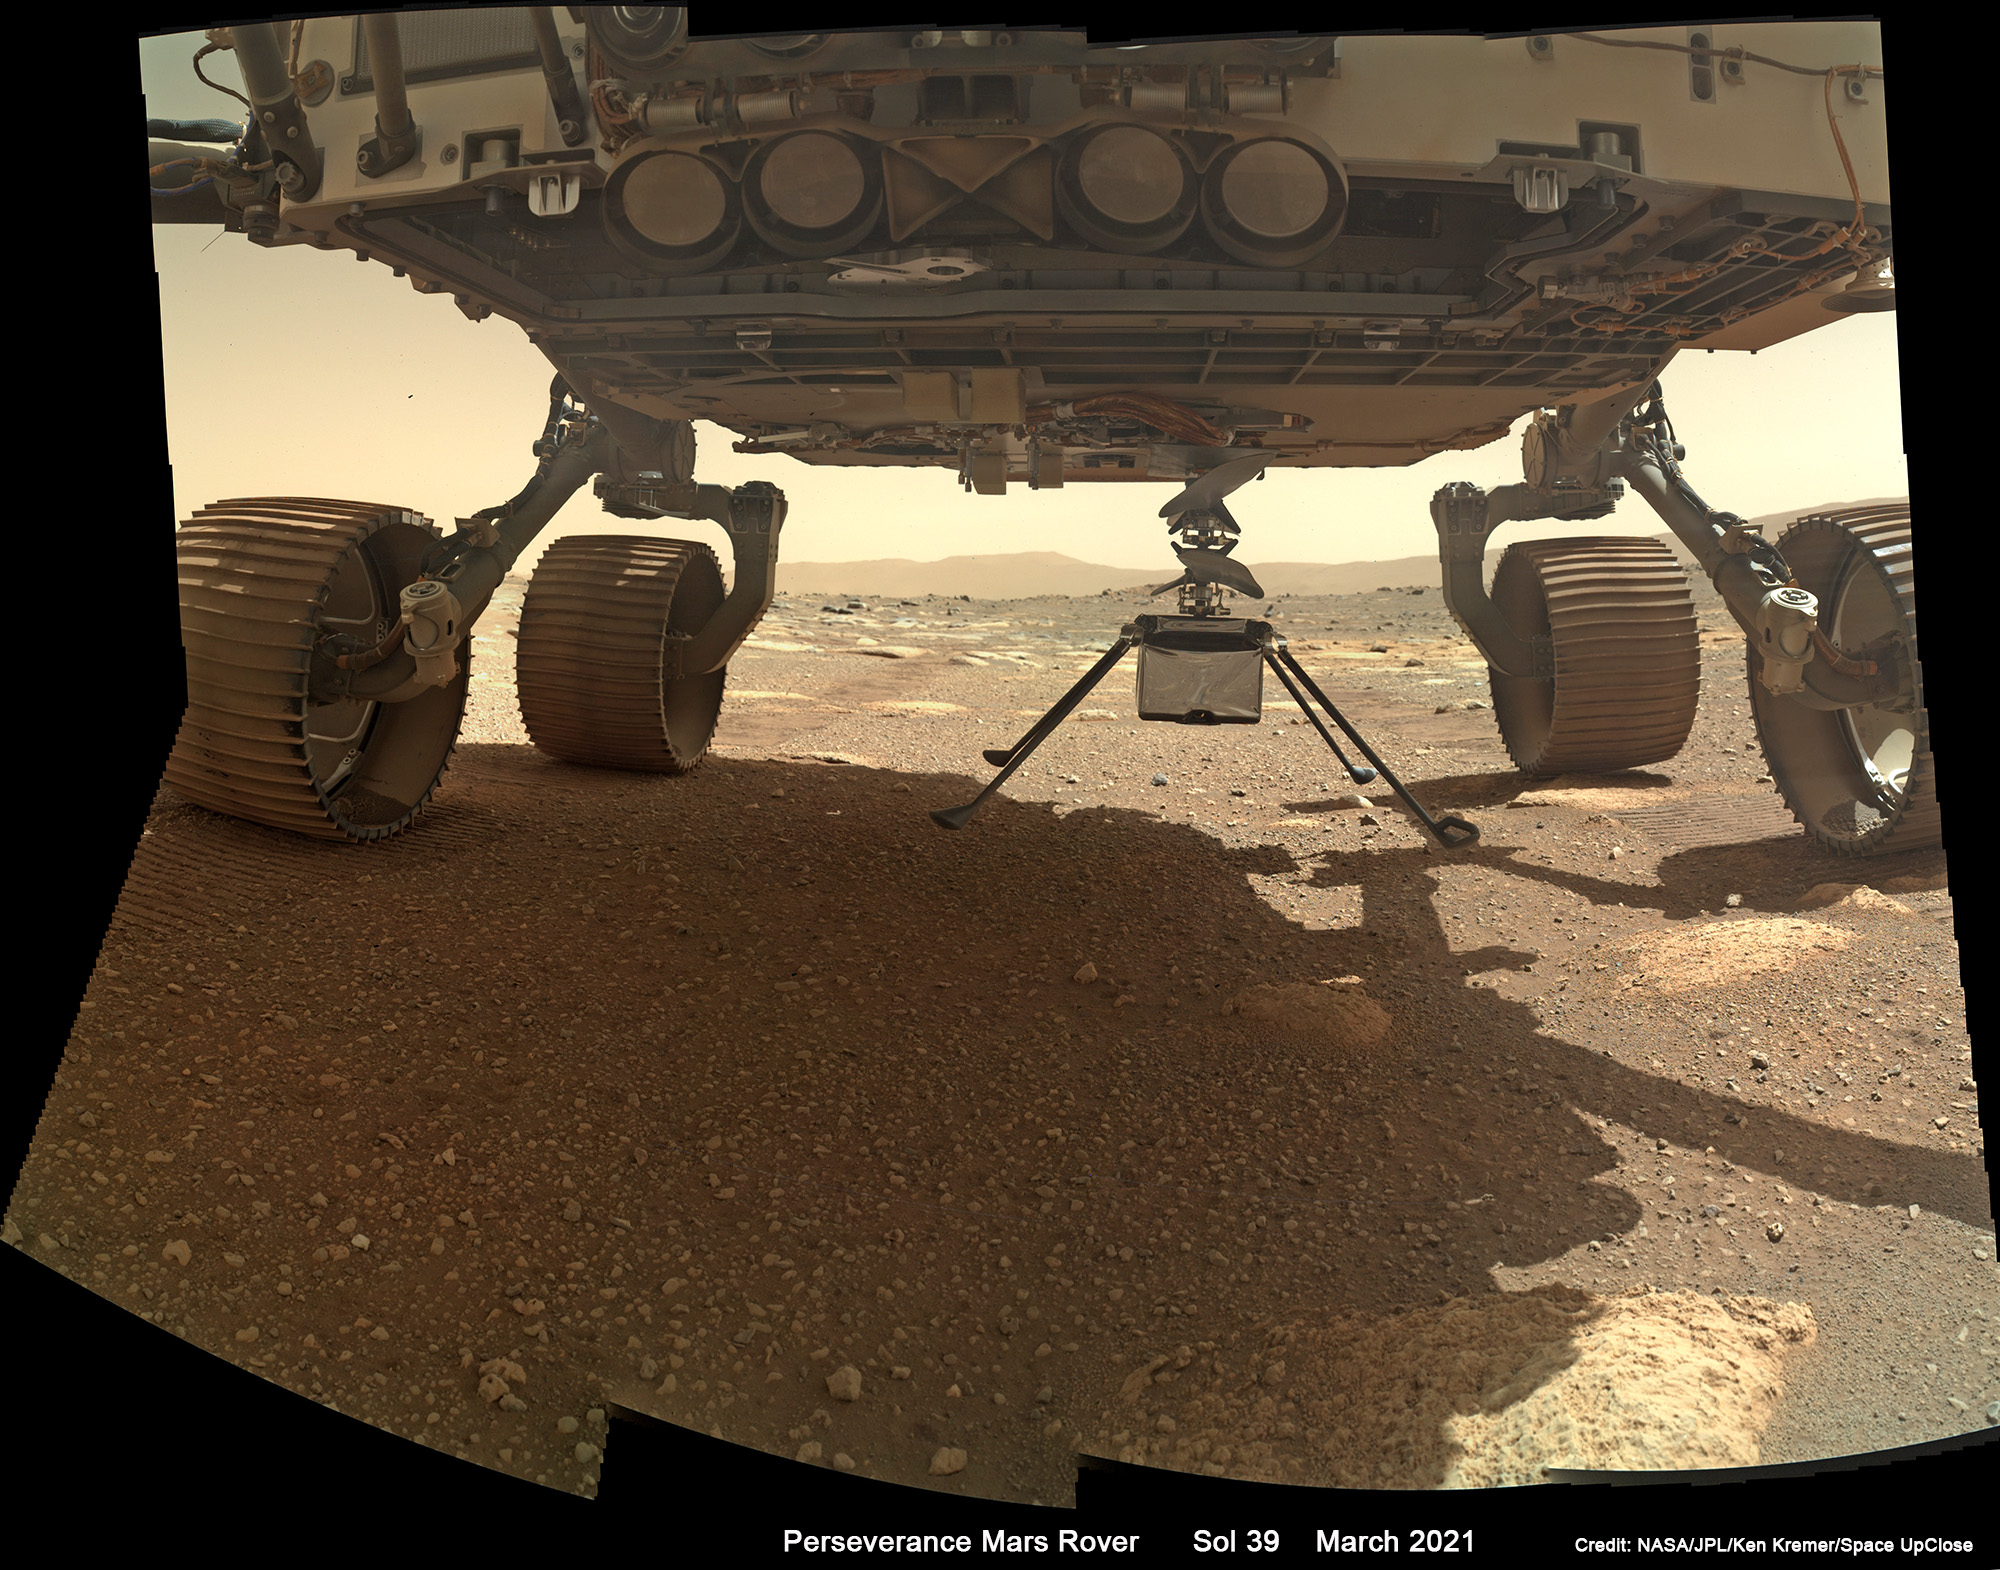 NASA Retargets Ingenuity 1st Flight Test to NET April 11 as Perseverance Rover Images Martian Terrain: Mosaics